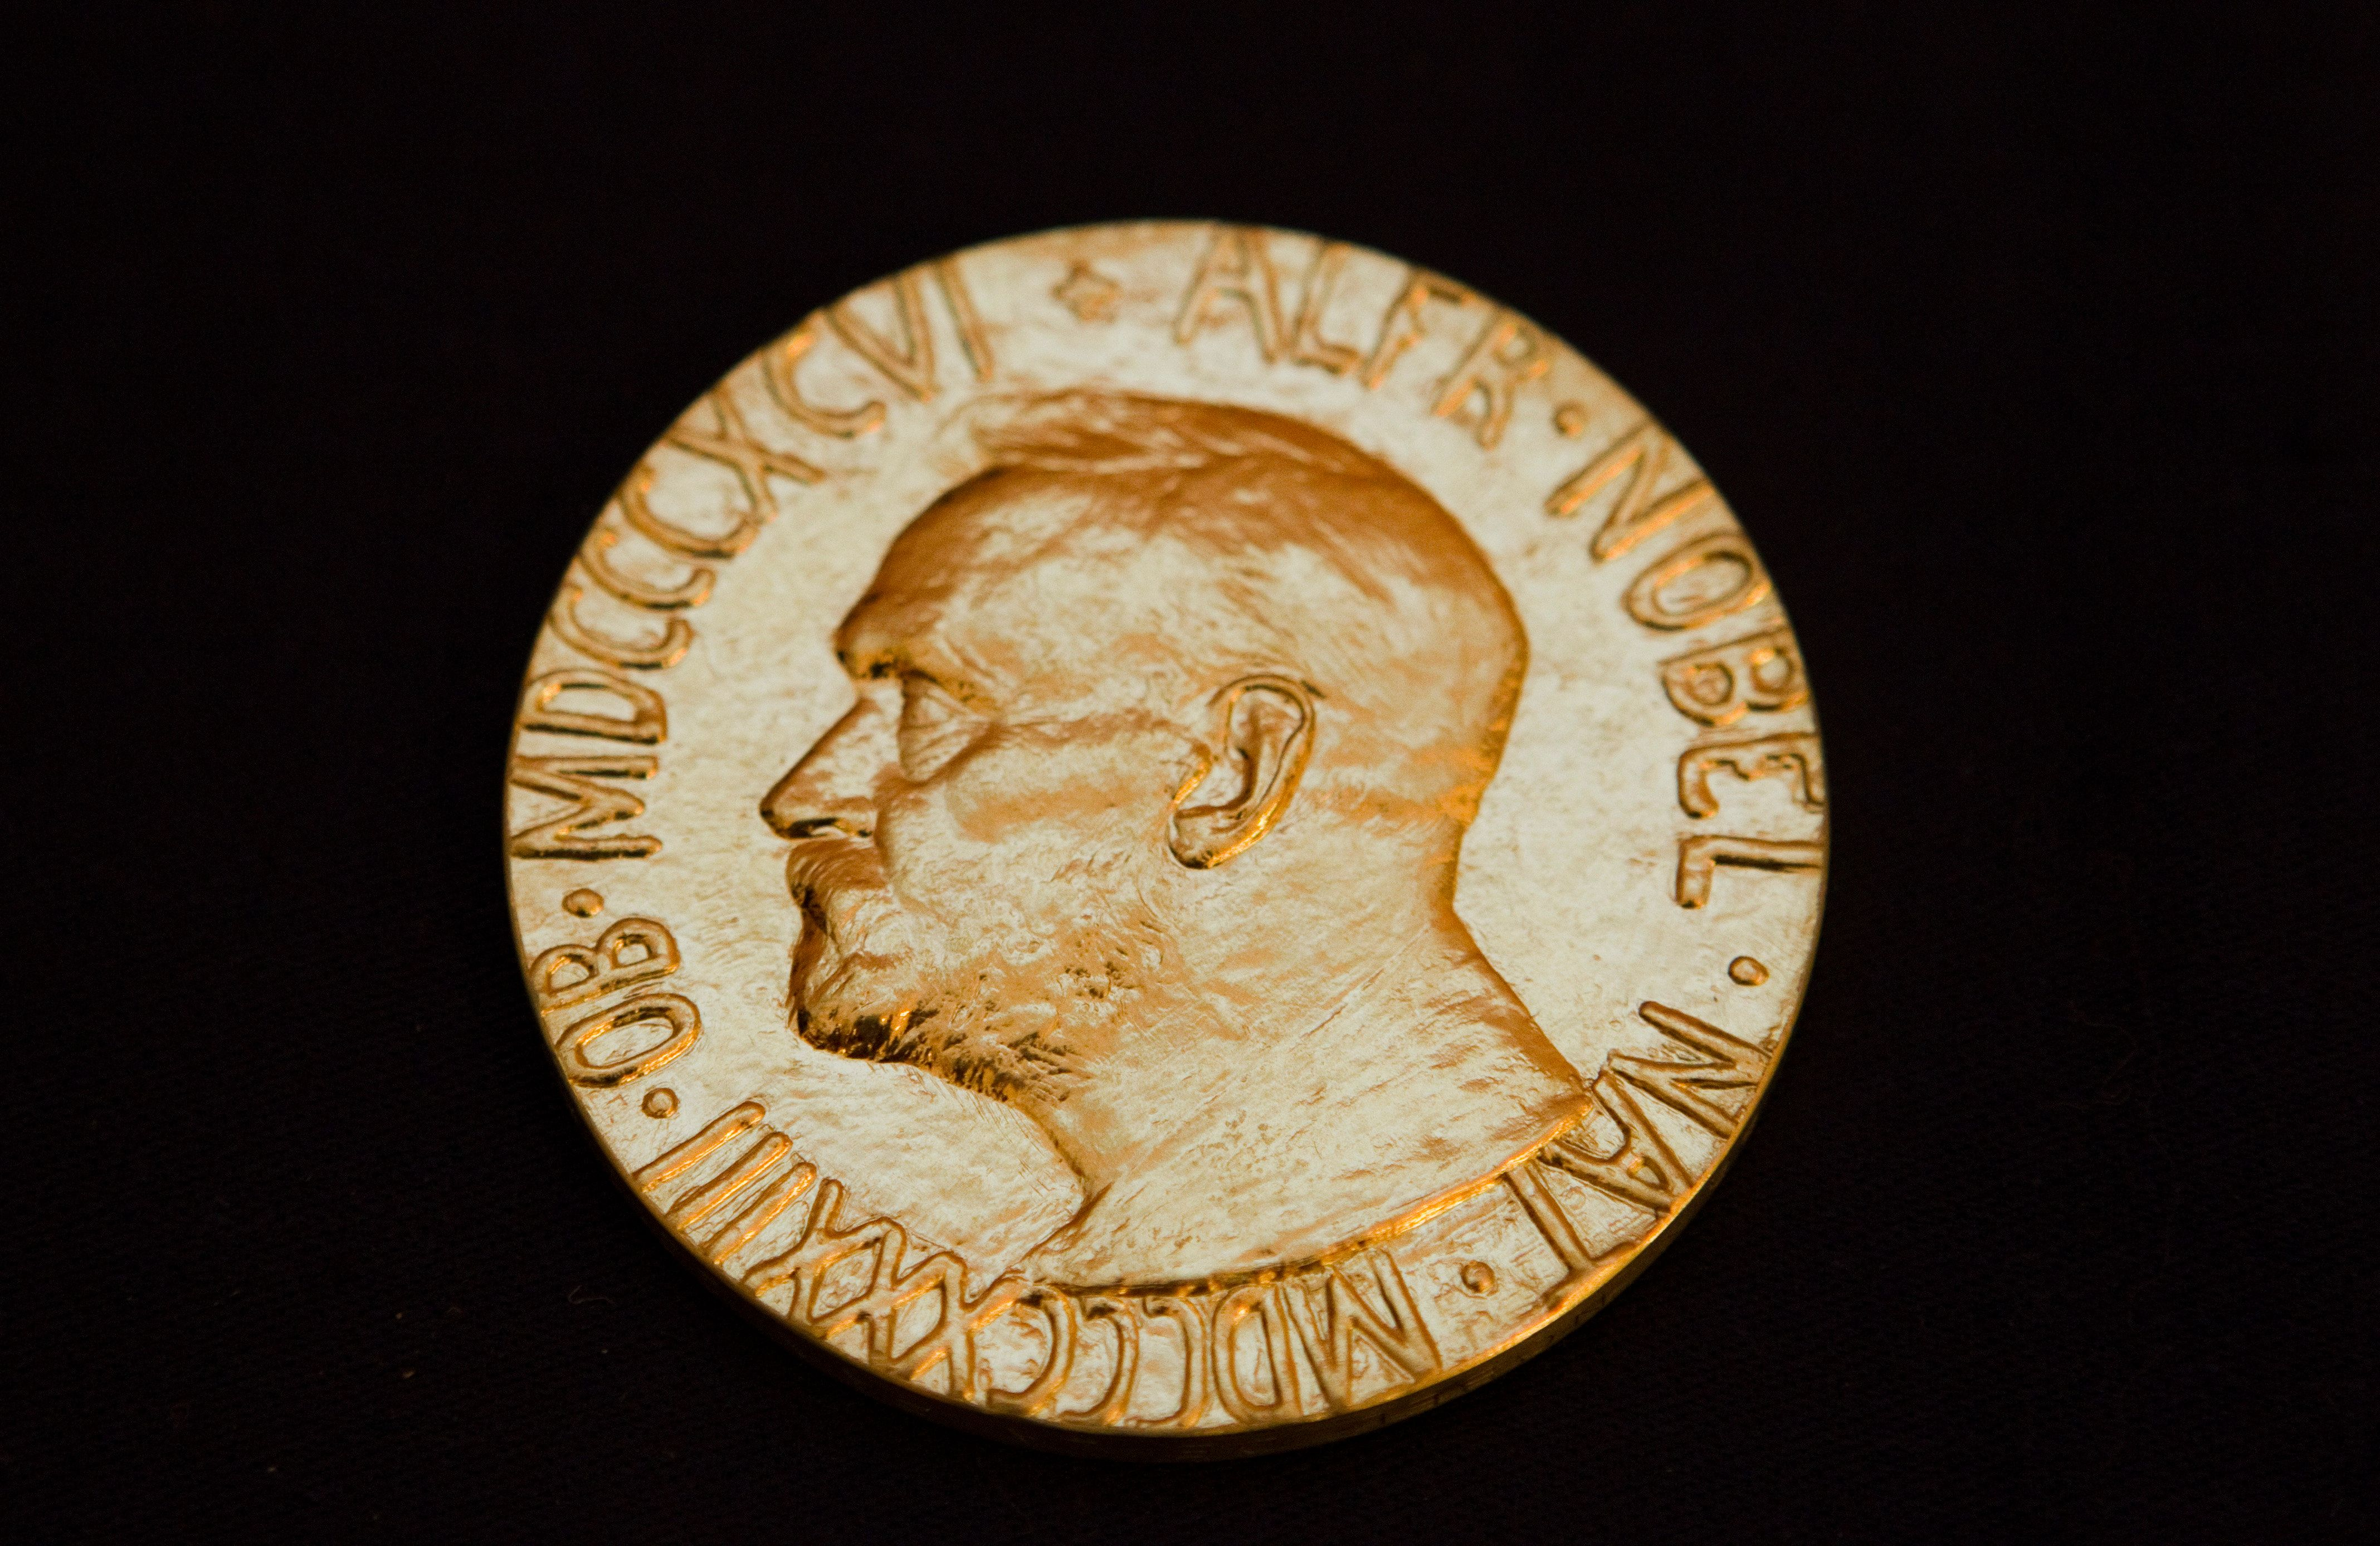 The front of the Nobel medal is seen in this picture from Dec. 8, 2010.